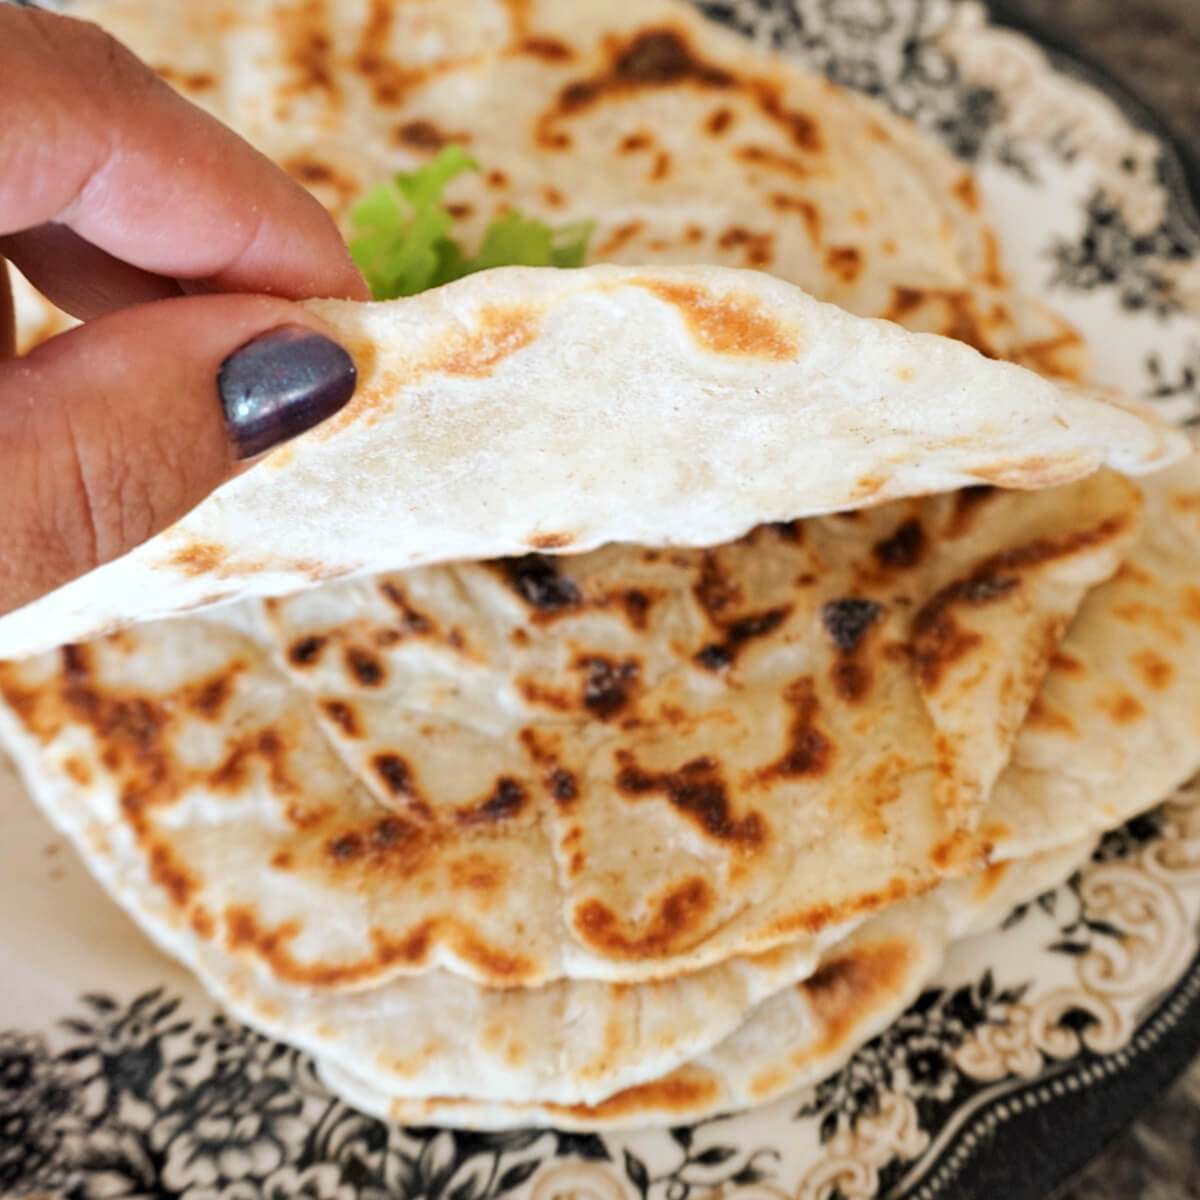 Hand-held flat bread to show thickness